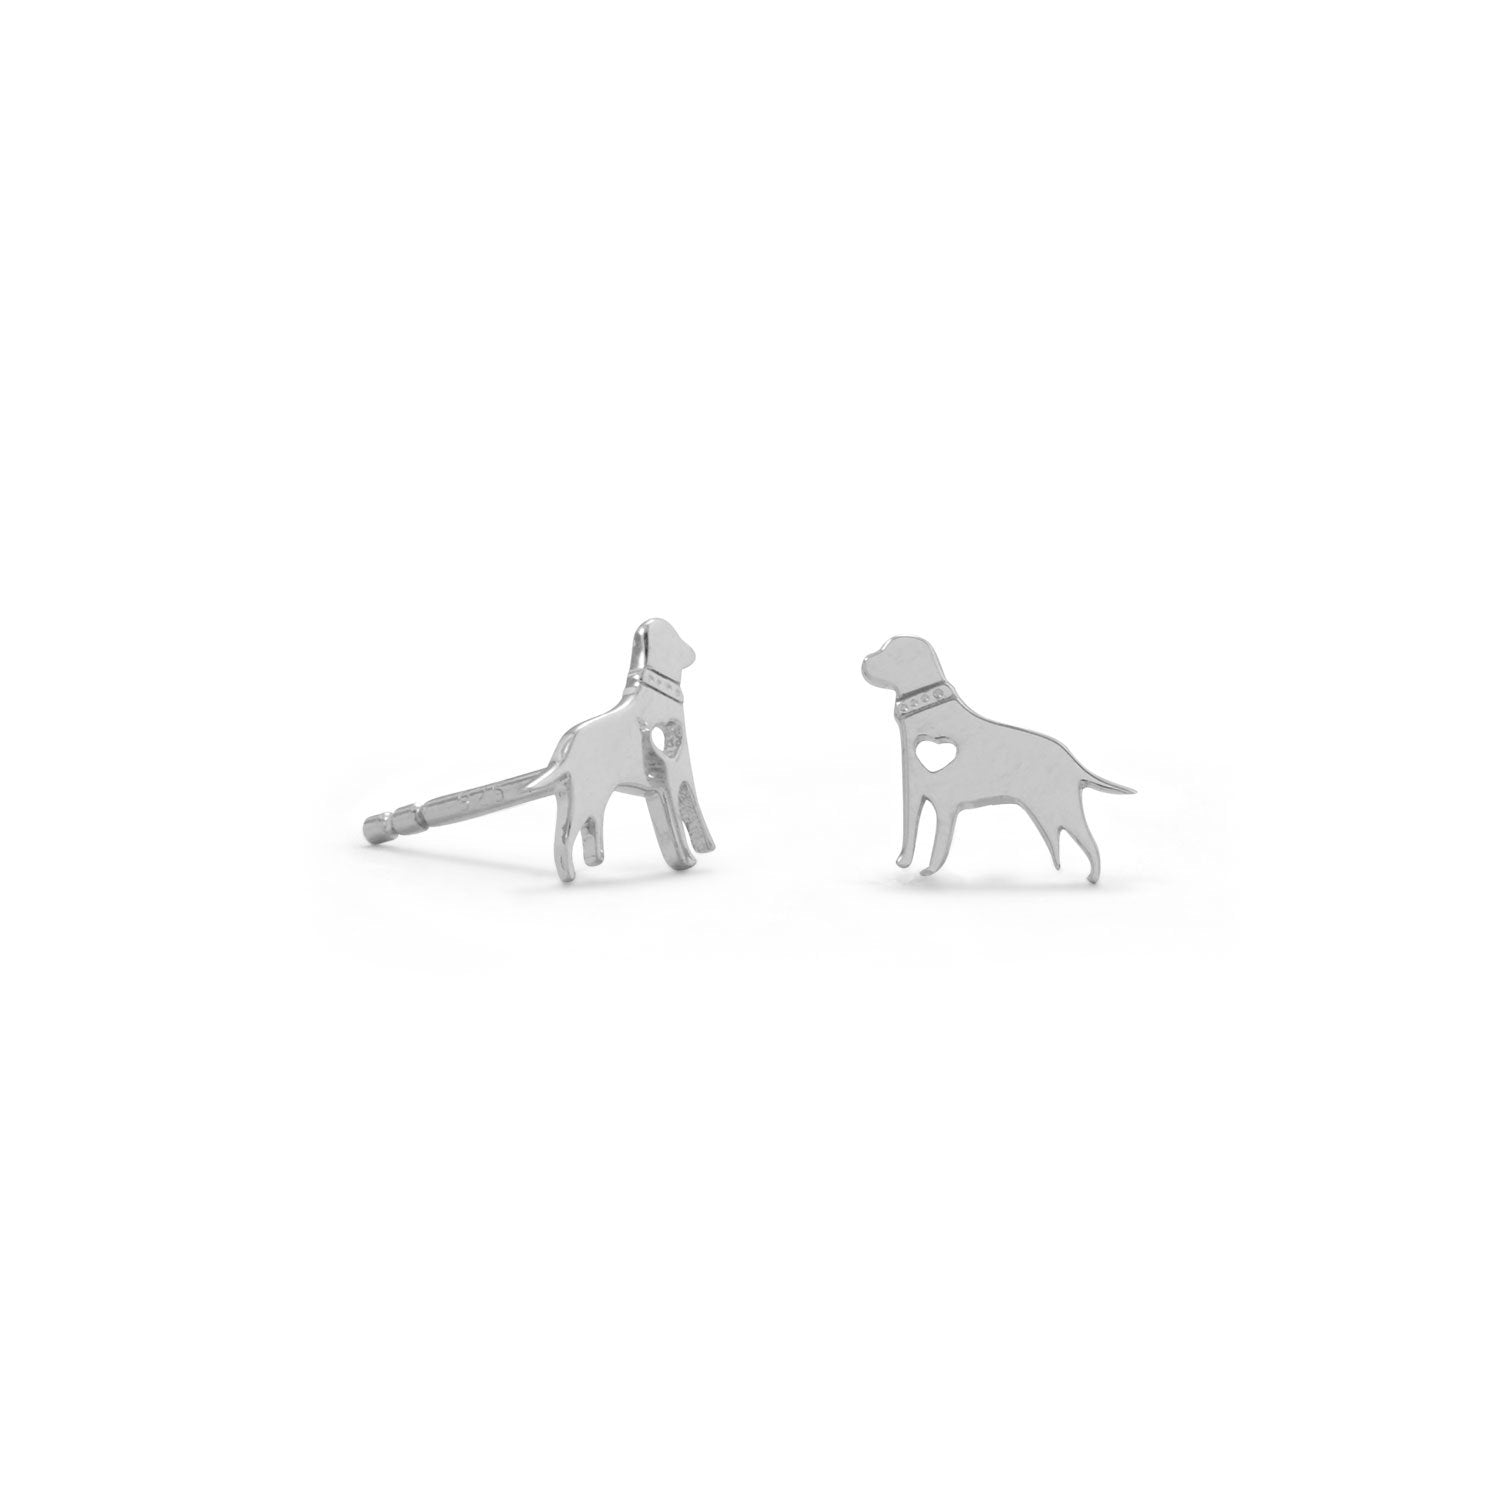 Rhodium Plated Darling Dog Studs - Rocky Mt. Outlet Inc - Shop & Save 24/7